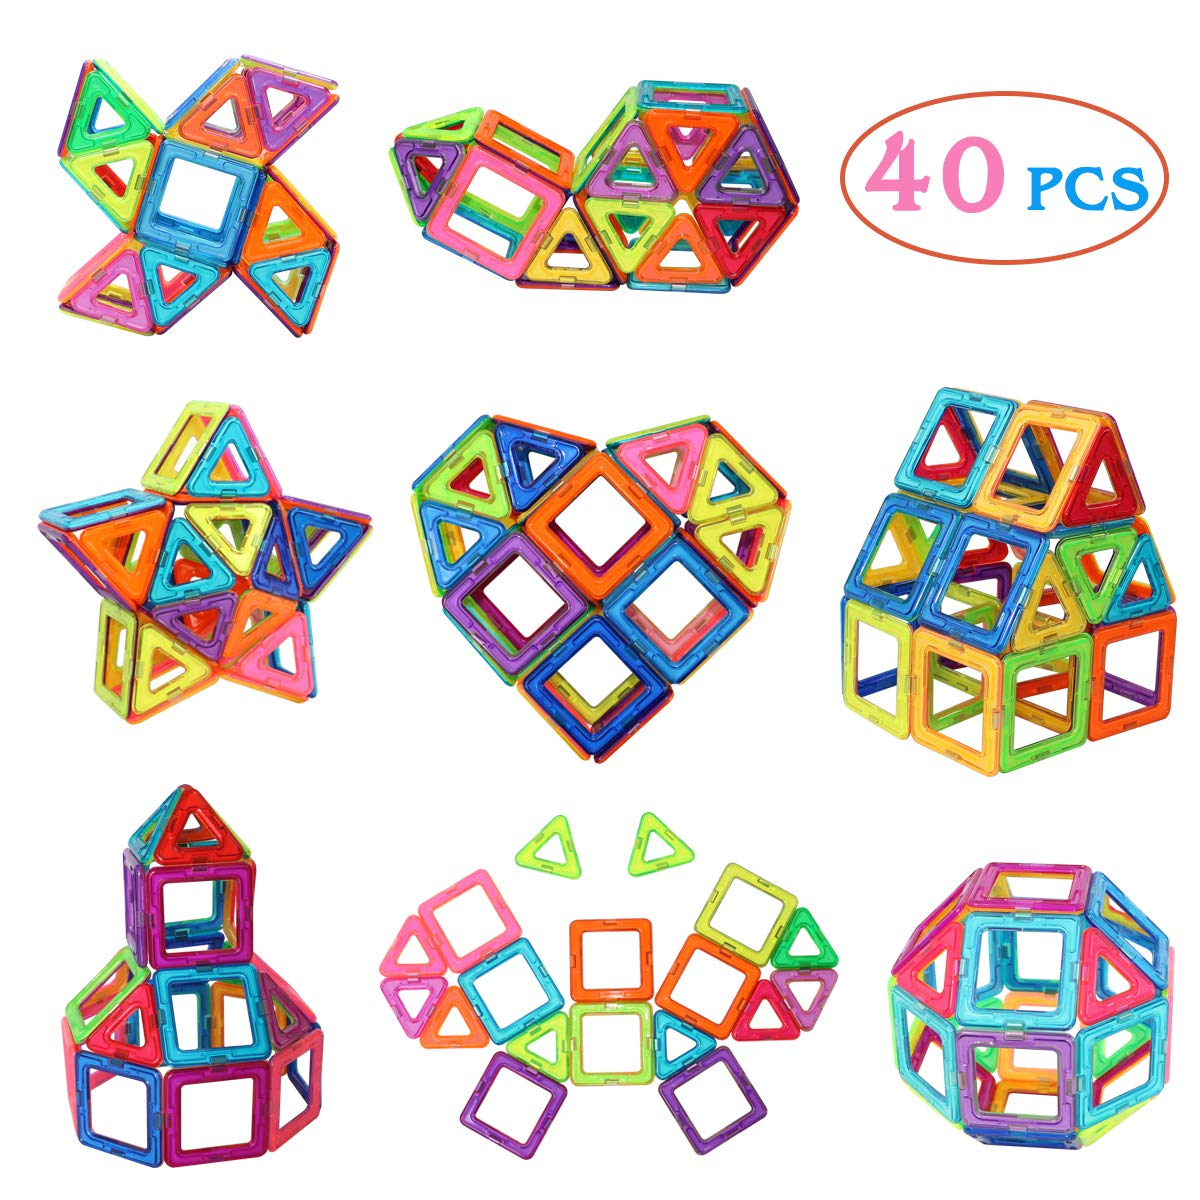 Manve 40 Pcs Magnet Building Tiles Clear Magnetic 3D Building Blocks Construction Playboards - Creativity Beyond Imagination, Inspirational, Recreational, Educational, Conventional